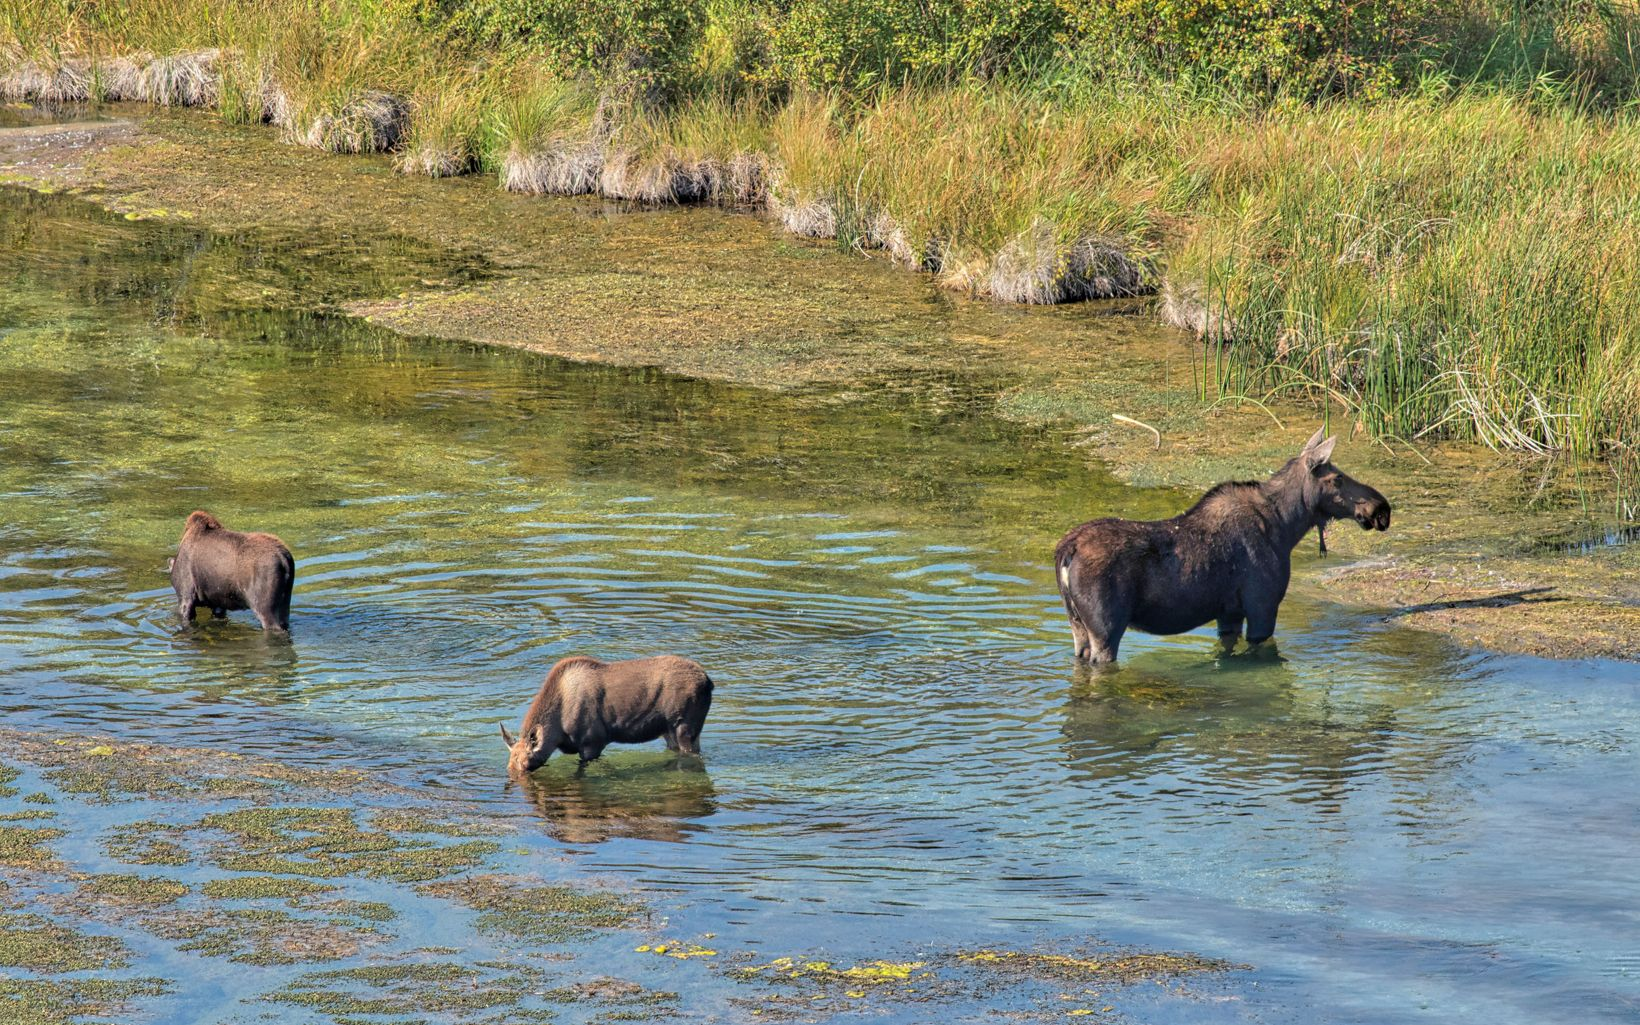 The preserve is know for epic fishing grounds but it is also a sanctuary for a diversity of wildlife including moose, elk, and sandhill cranes.